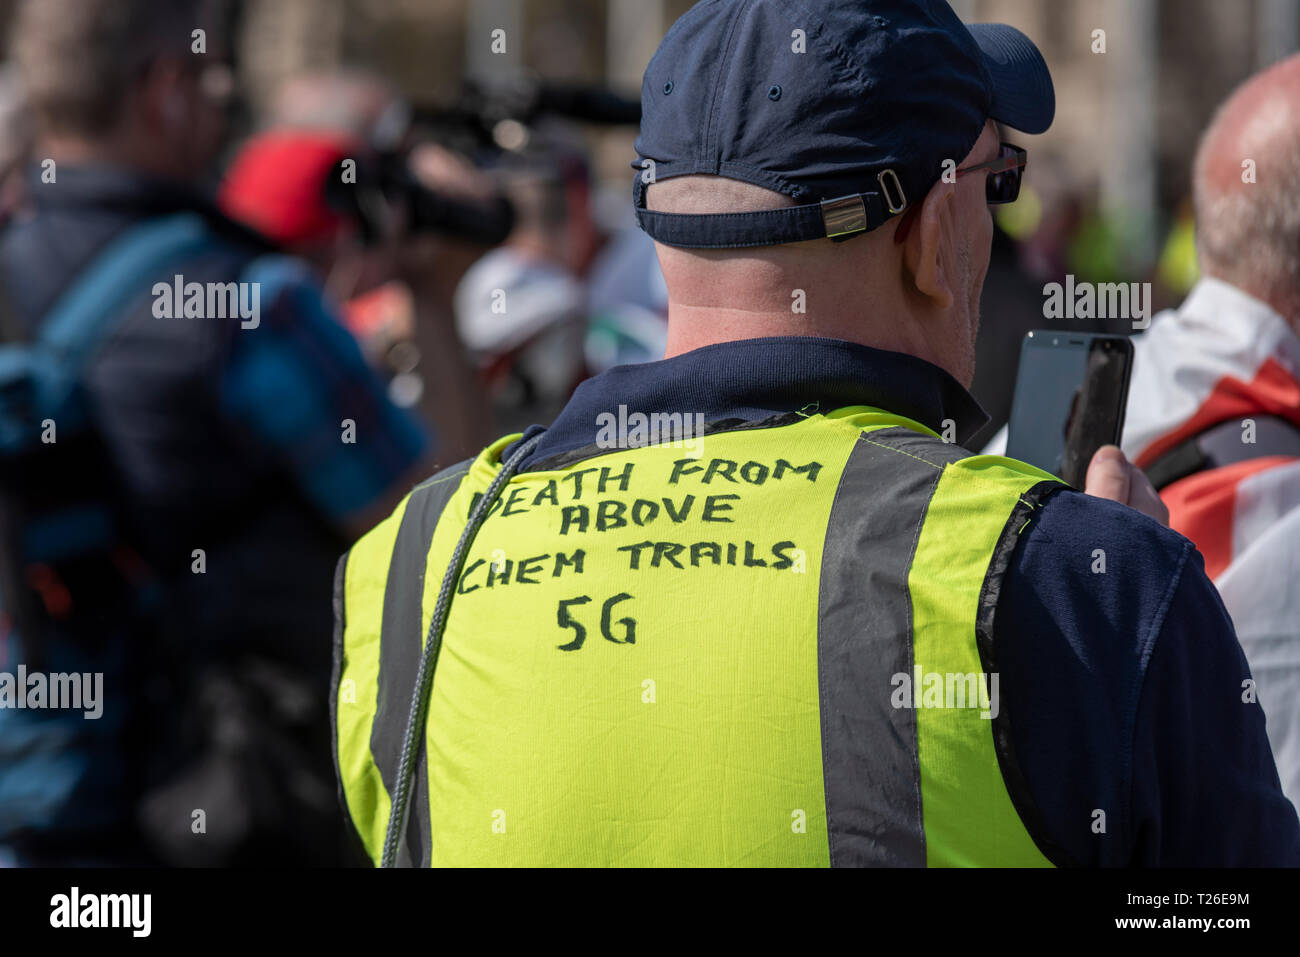 Male yellow vest wearer at Brexit with hand written slogan death from above chem trails 5G. Conspiracy theory. Conspiracy theories. Using mobile phone - Stock Image